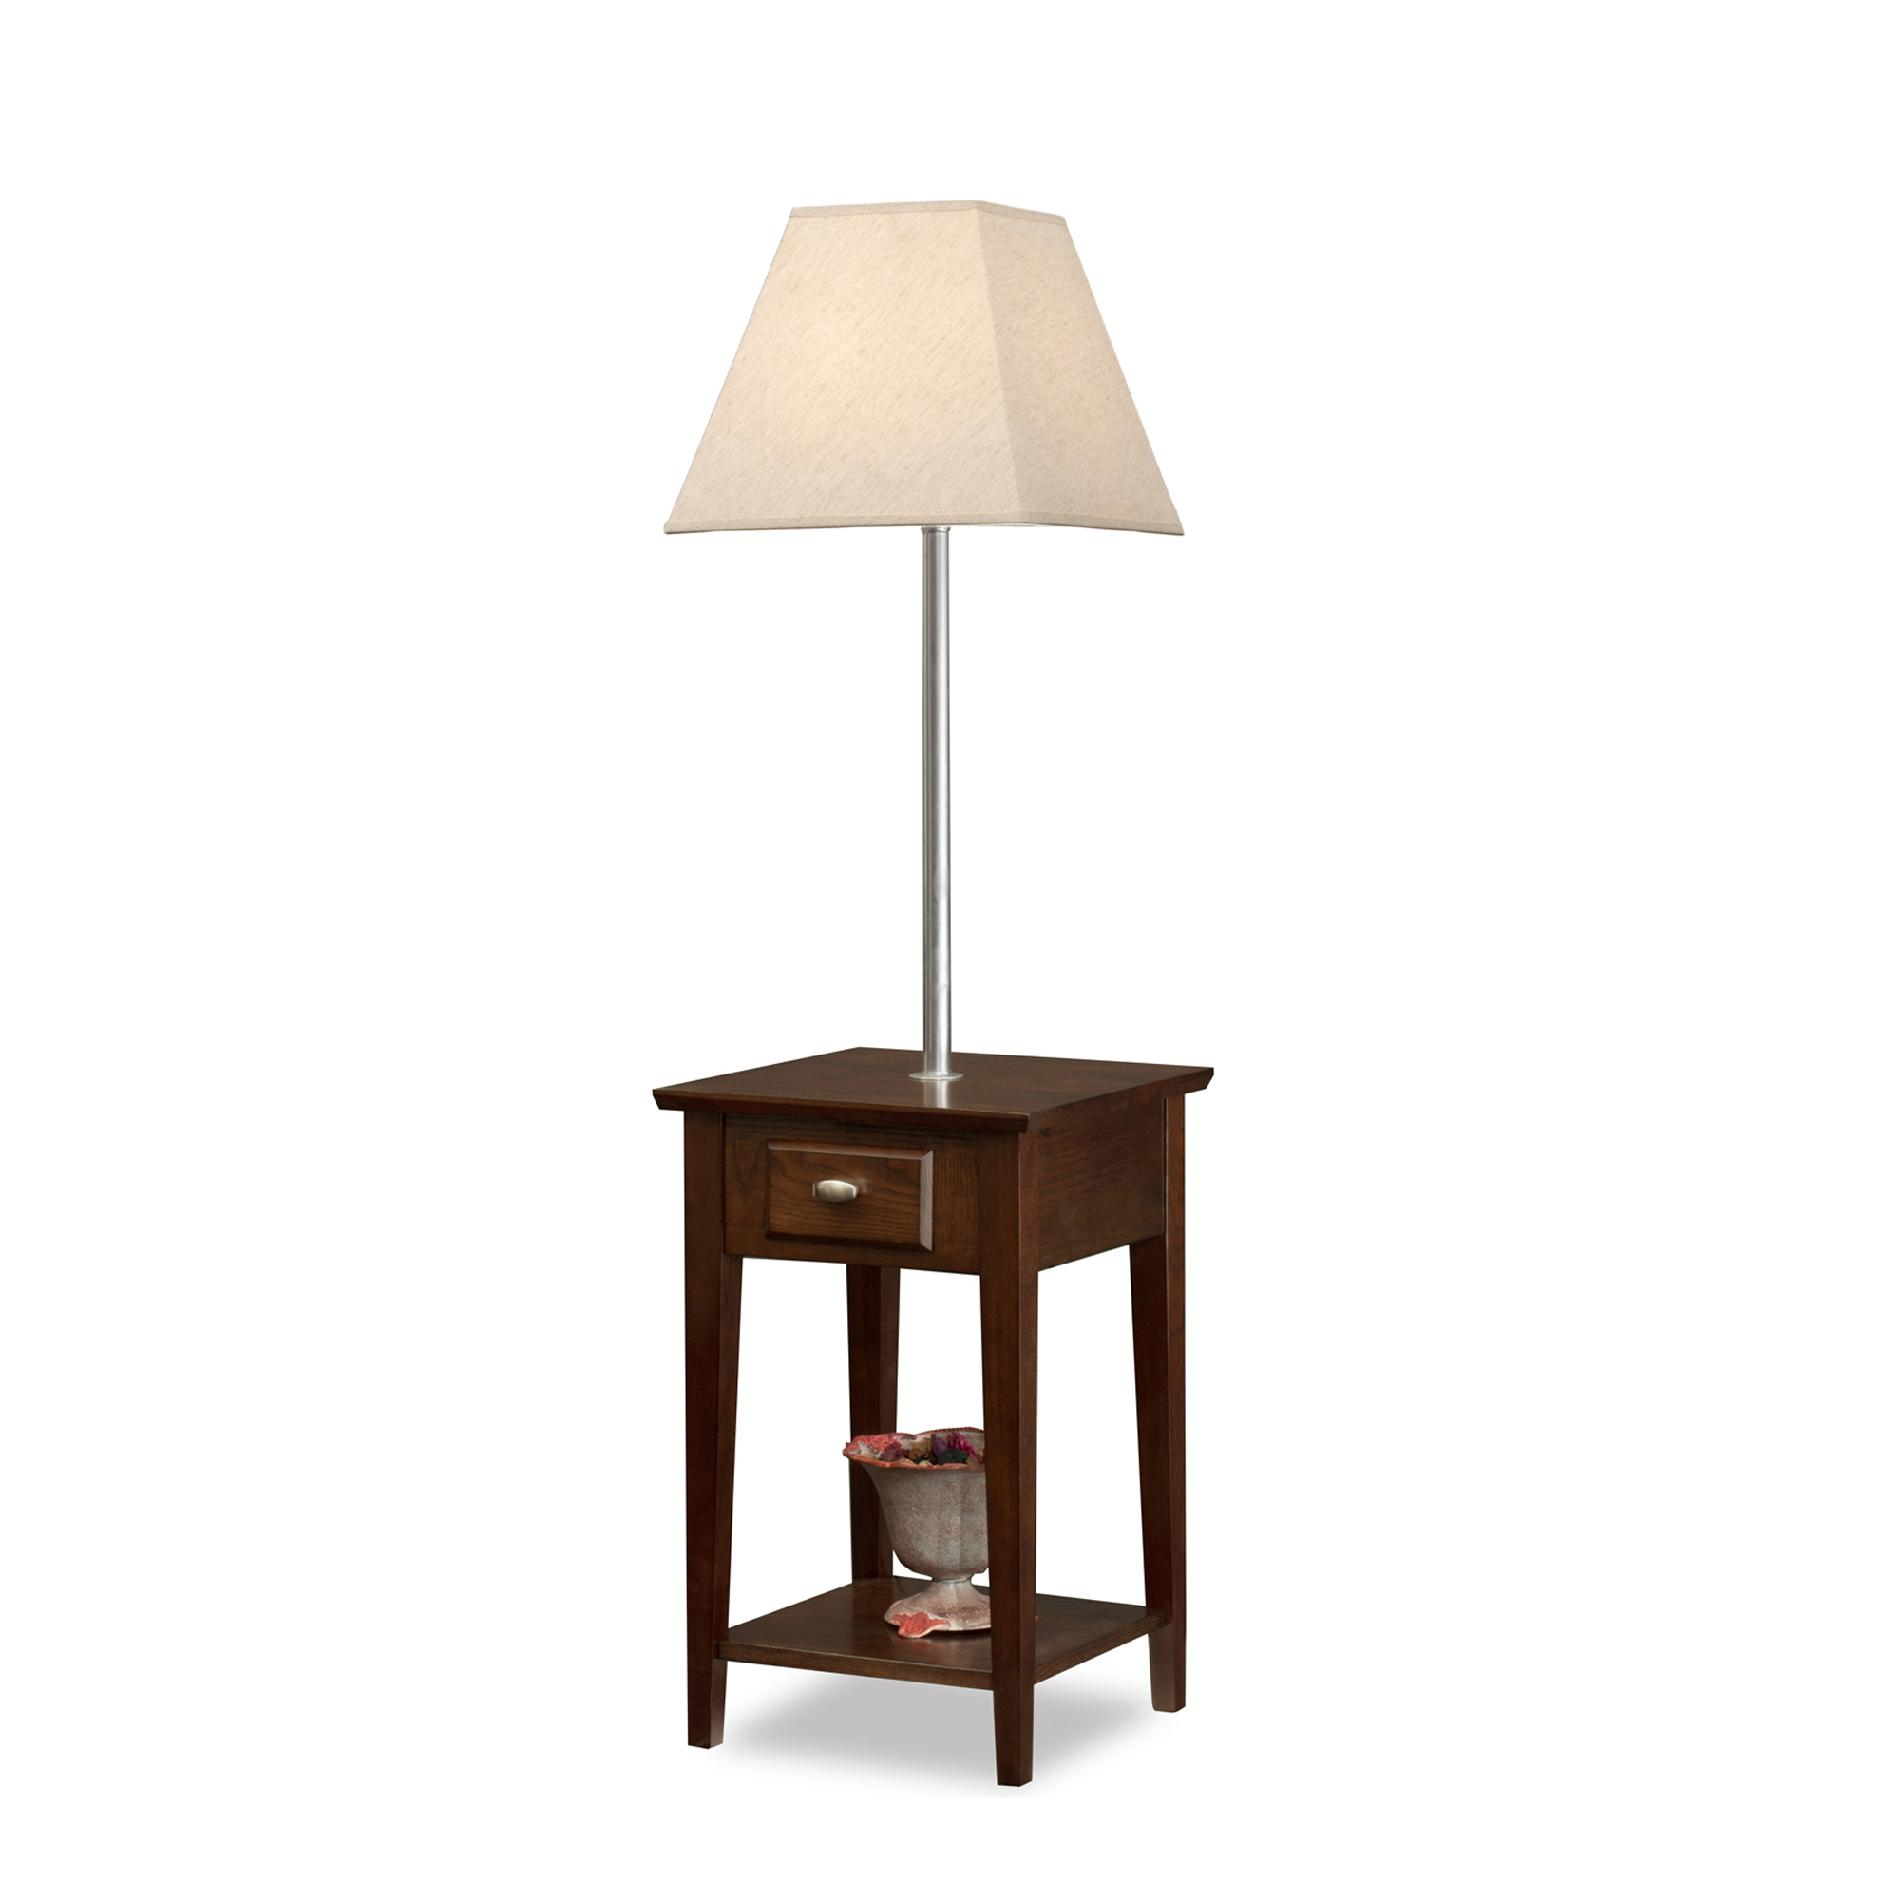 Leick Leick Chocolate Square Lamp End Table